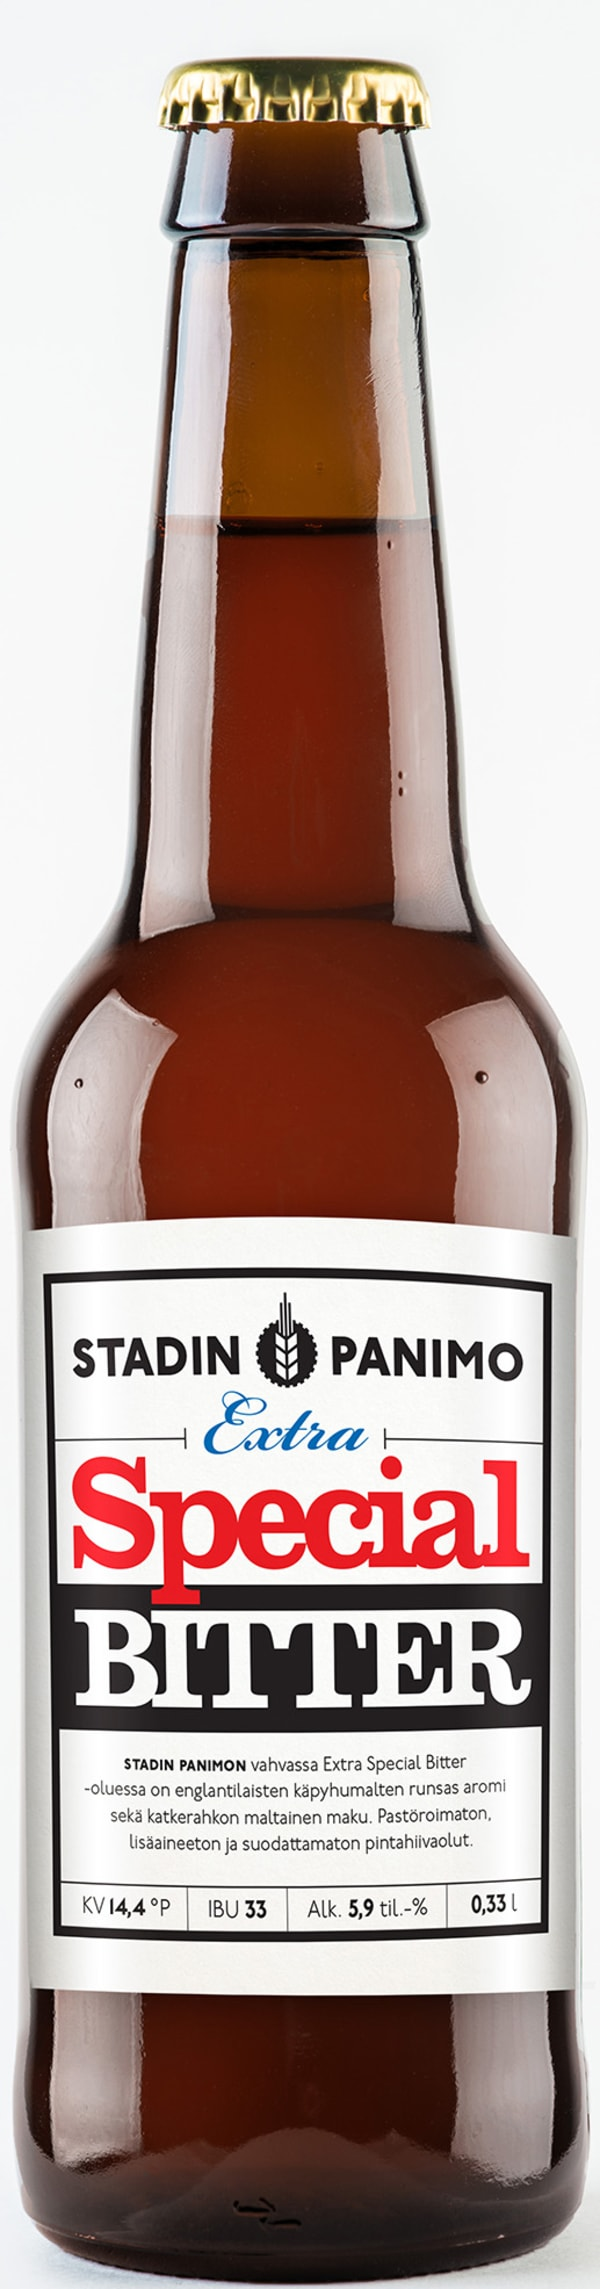 Stadin Panimo Extra Special Bitter